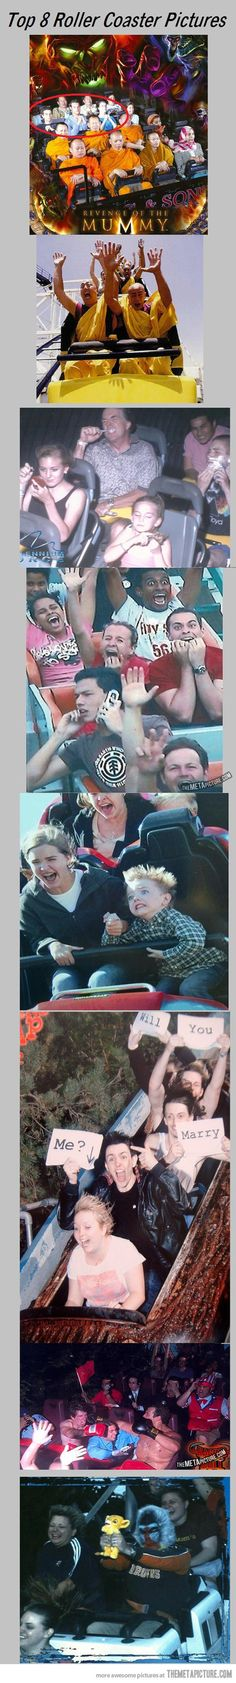 Creative roller coaster pictures… haha these are great! The Last One!!!!!!